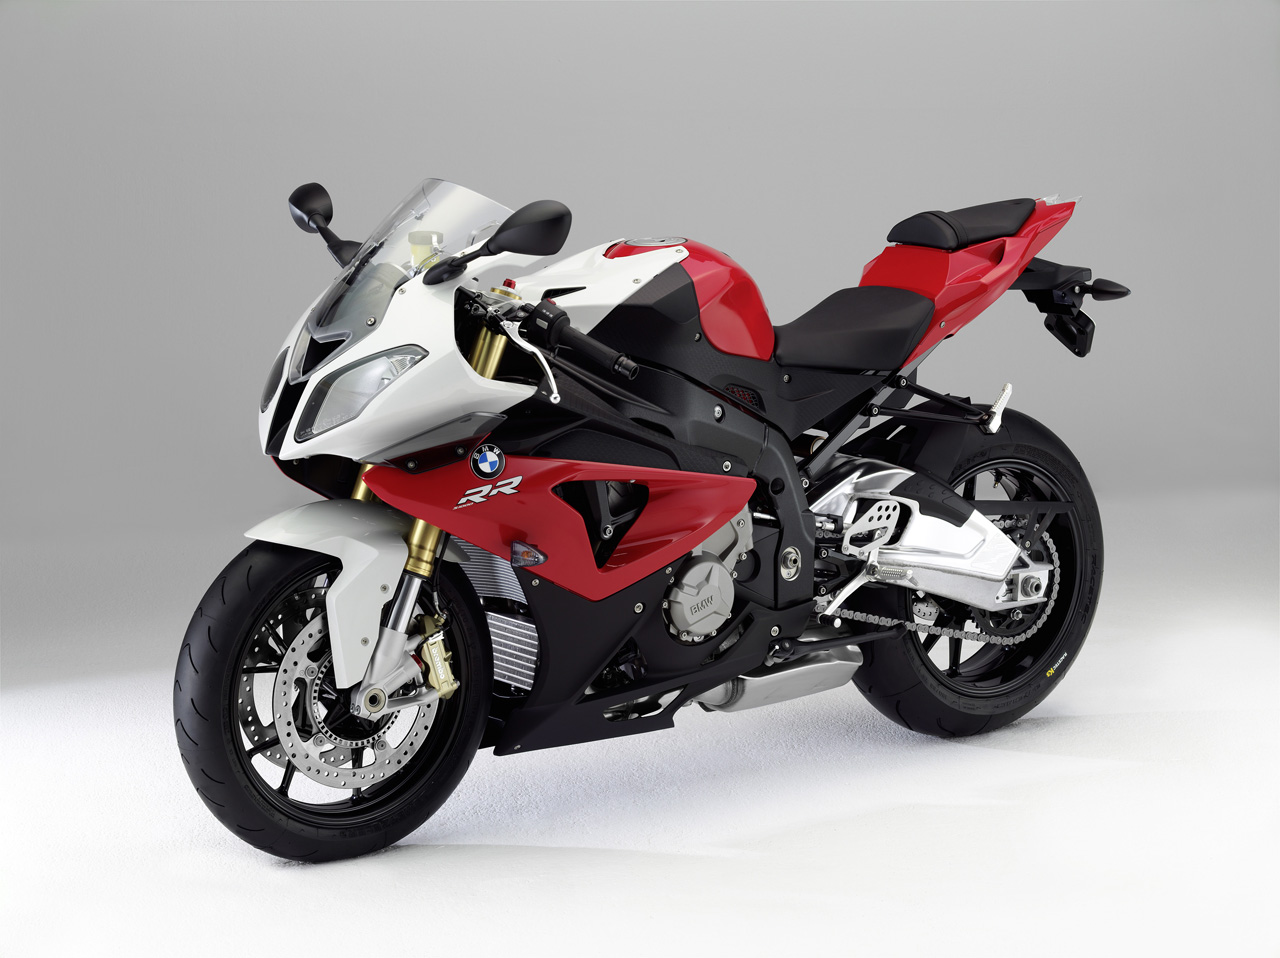 2012 bmw s 1000 rr 4 2012 BMW S 1000 RR   Implementing Changes…